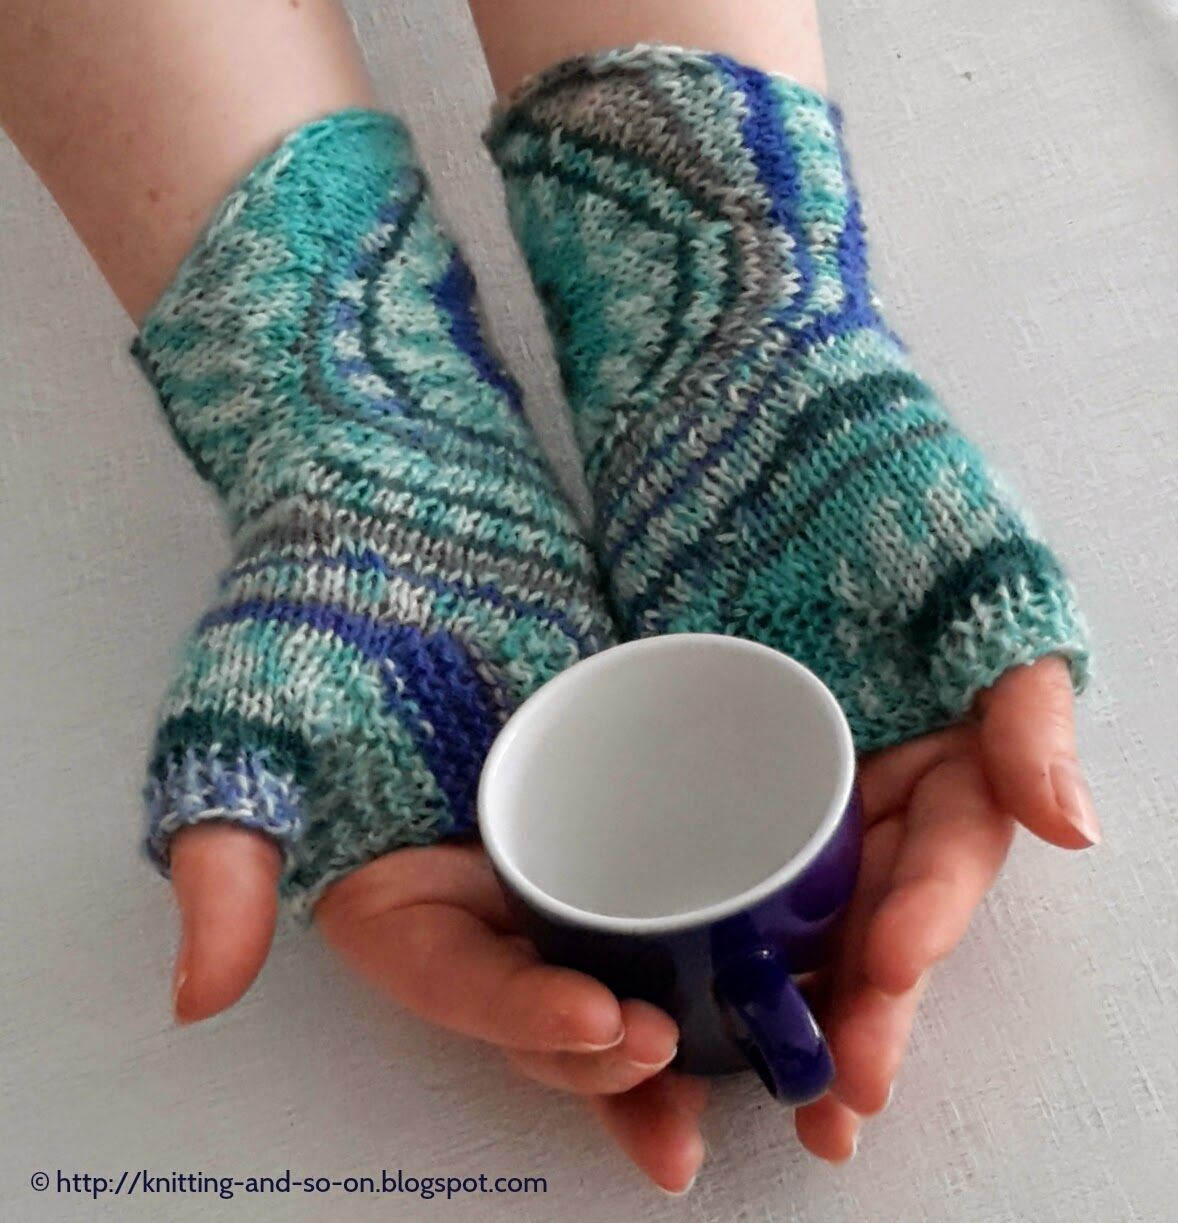 Free knitting pattern zoom out fingerless gloves sewing free knitting pattern zoom out fingerless gloves bankloansurffo Image collections